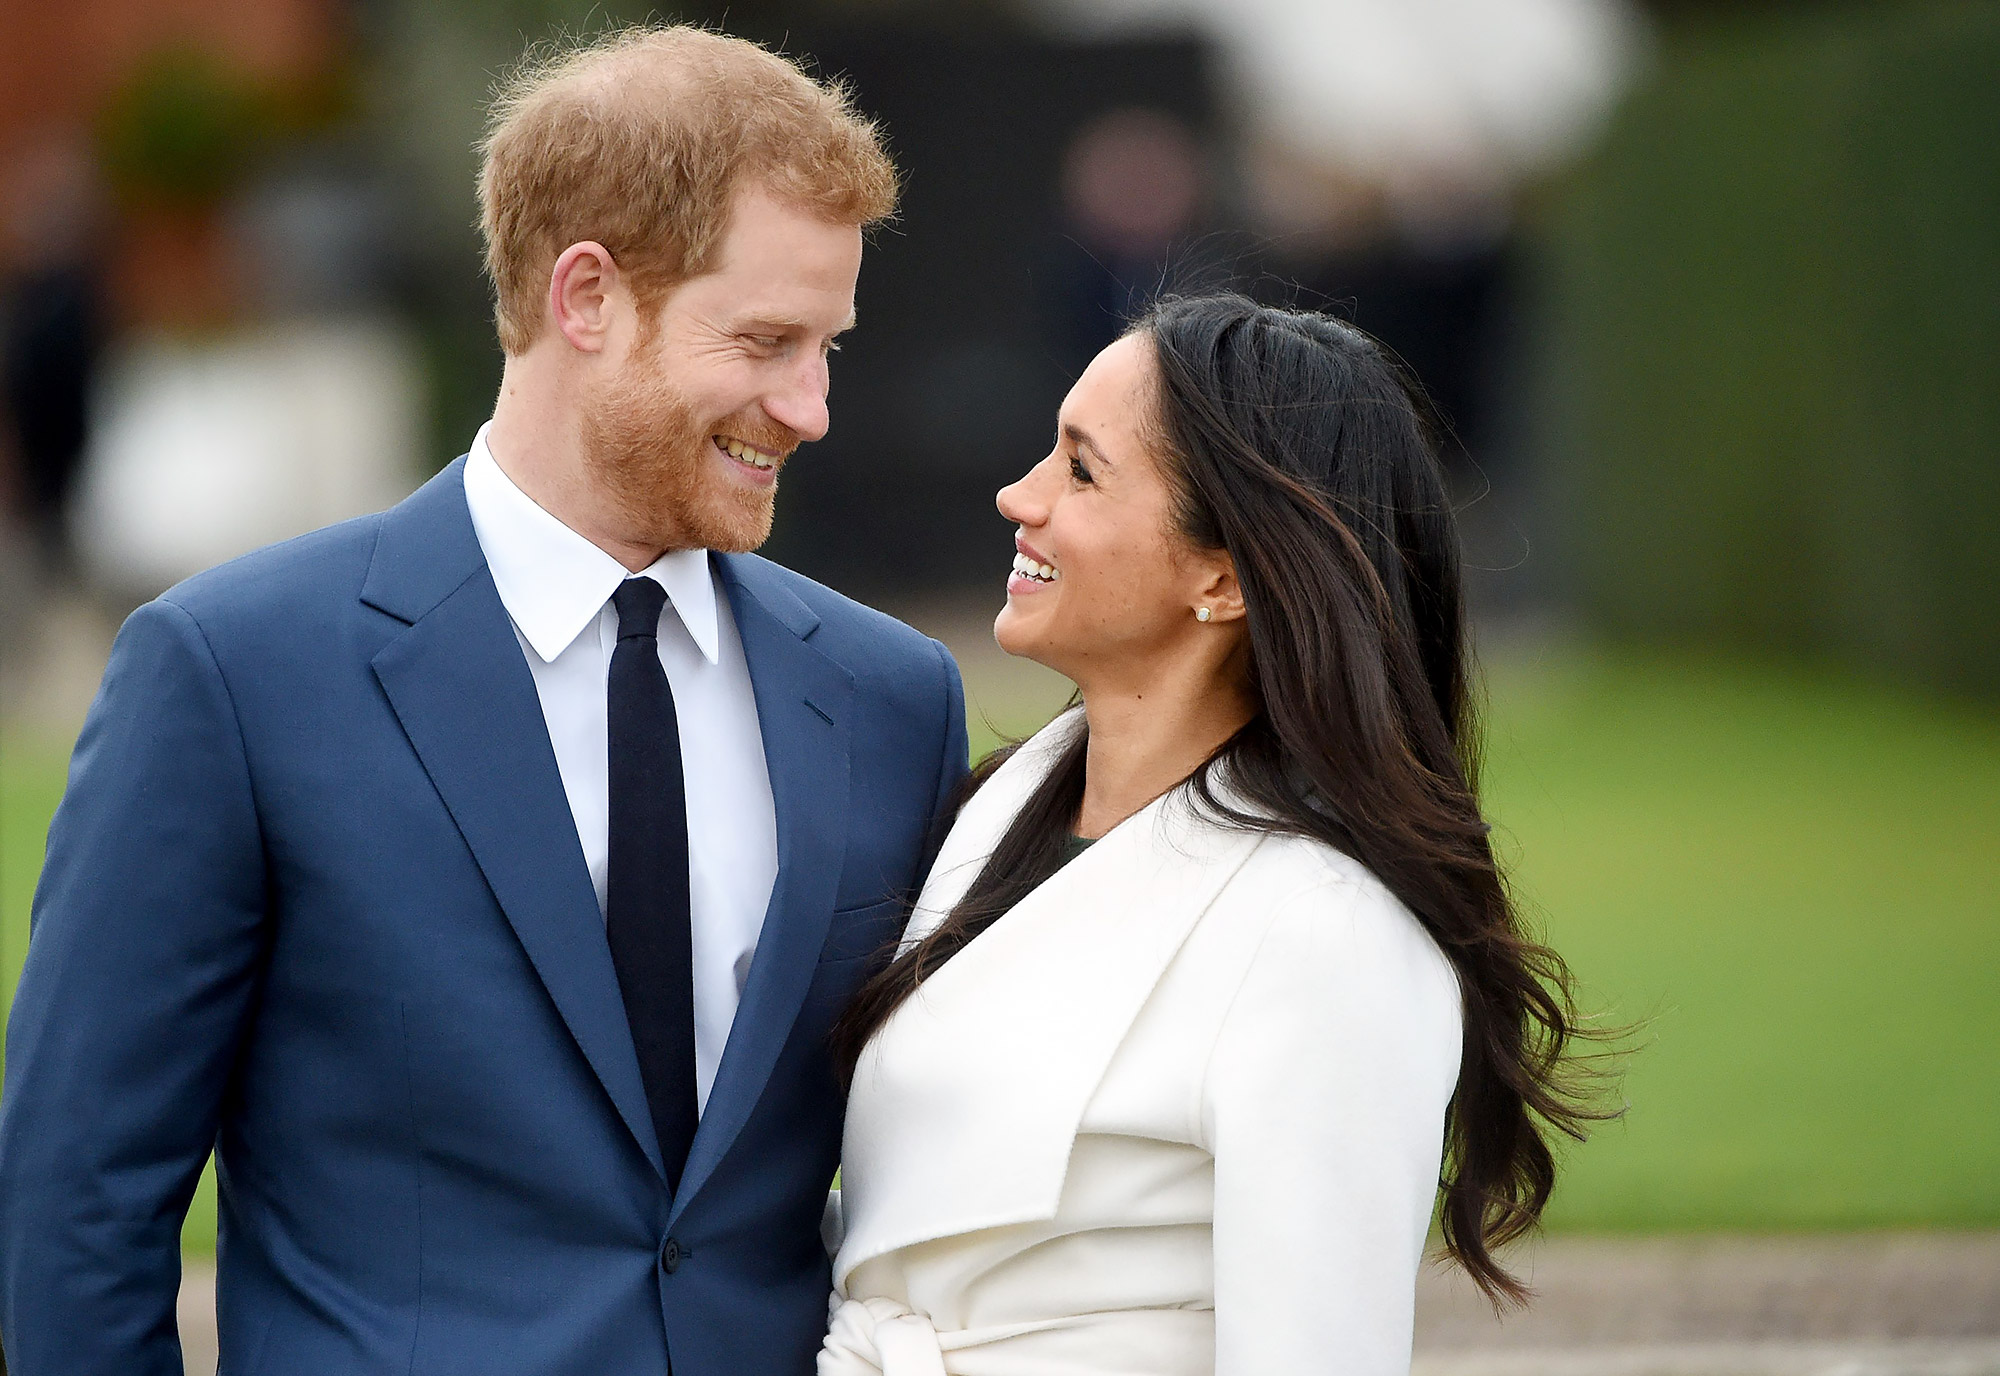 Prince Harry and Meghan Markle engagement in Kensington Palace, London, United Kingdom - 27 Nov 2017